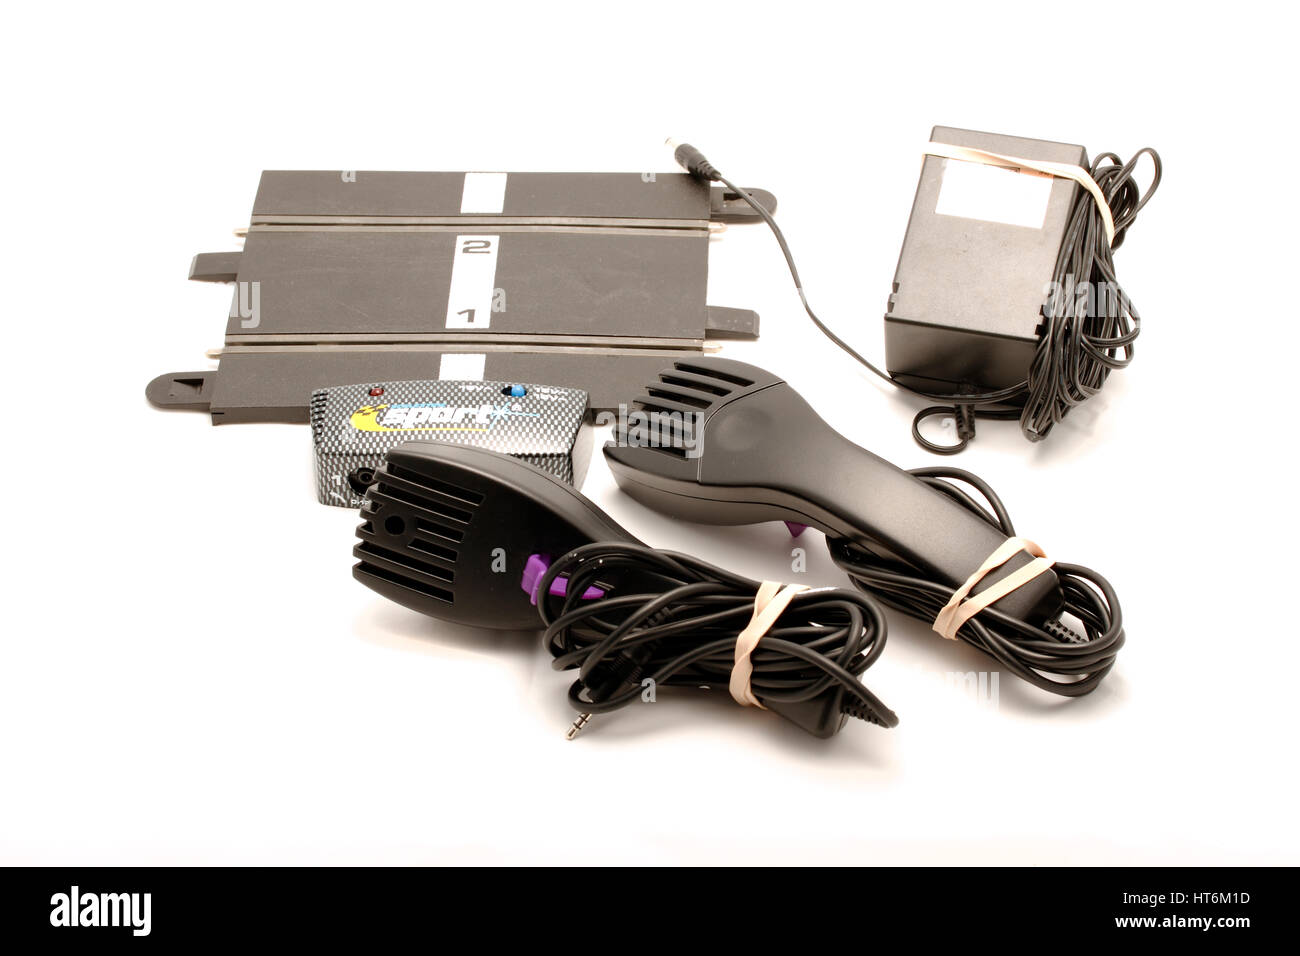 Scalextric advanced track system, C8217 Sport Power and controller with transformer. Two enhanced specification - Stock Image